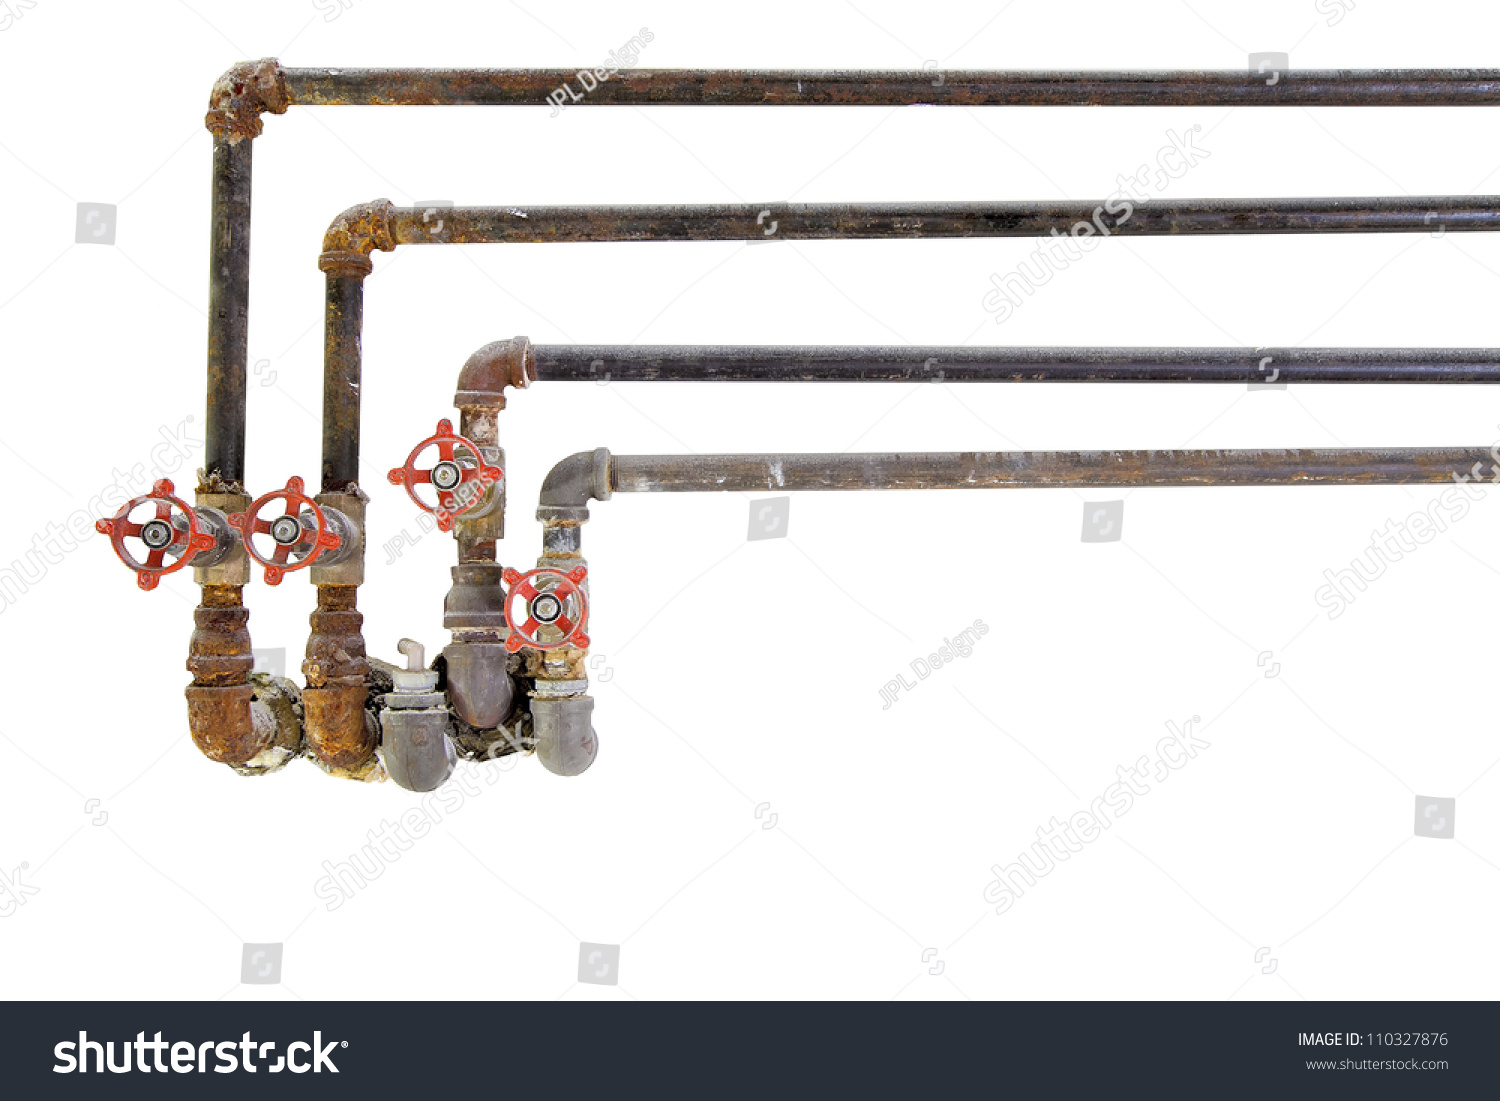 Old heating cooling water plumbing pipes stock photo for What are old plumbing pipes made of